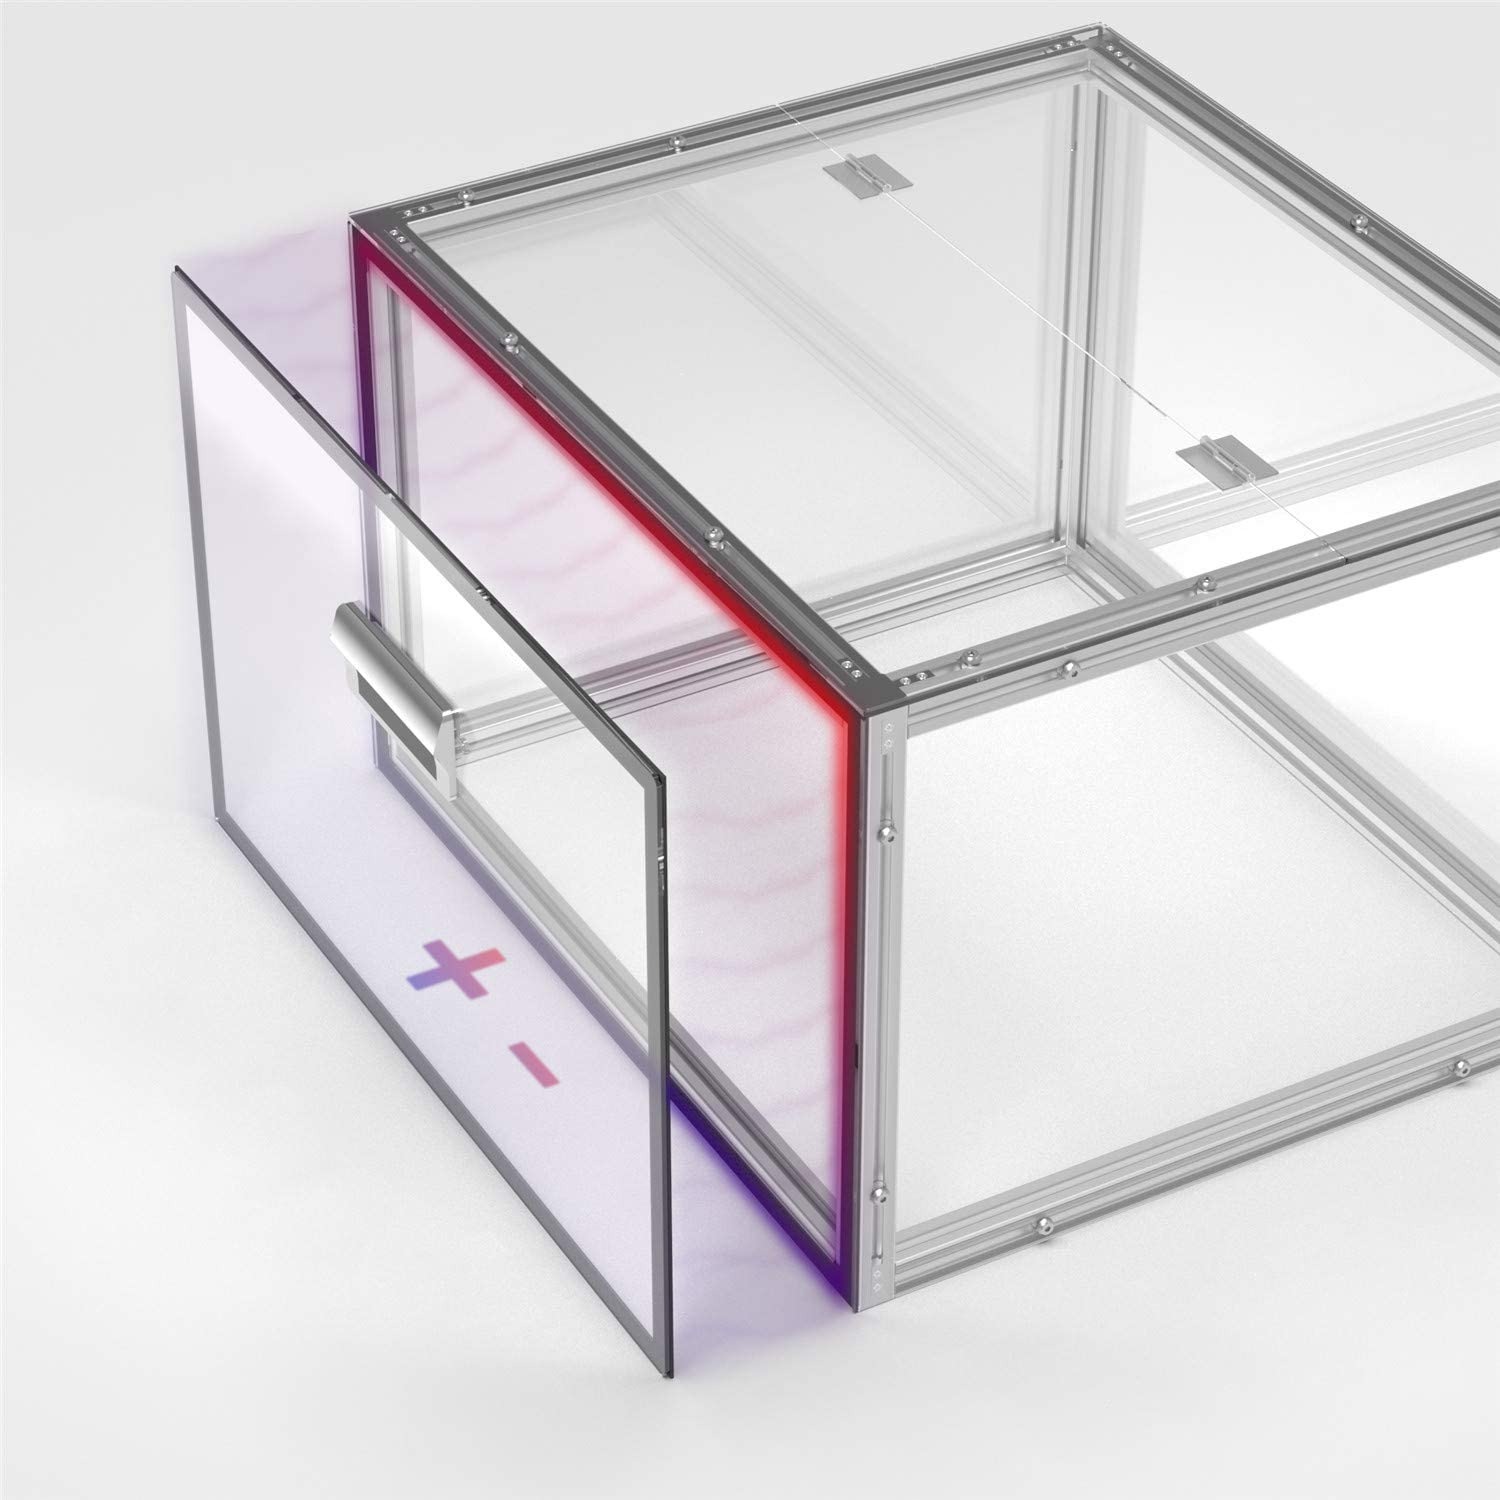 Enhanced Protection Noise Reduction Dustproof Genmitsu Acrylic CNC Enclosure Compatible with 3018-PRO//3018//3018-MX3//3018-PROVer//1810-PRO 460 x 400 x 310 mm